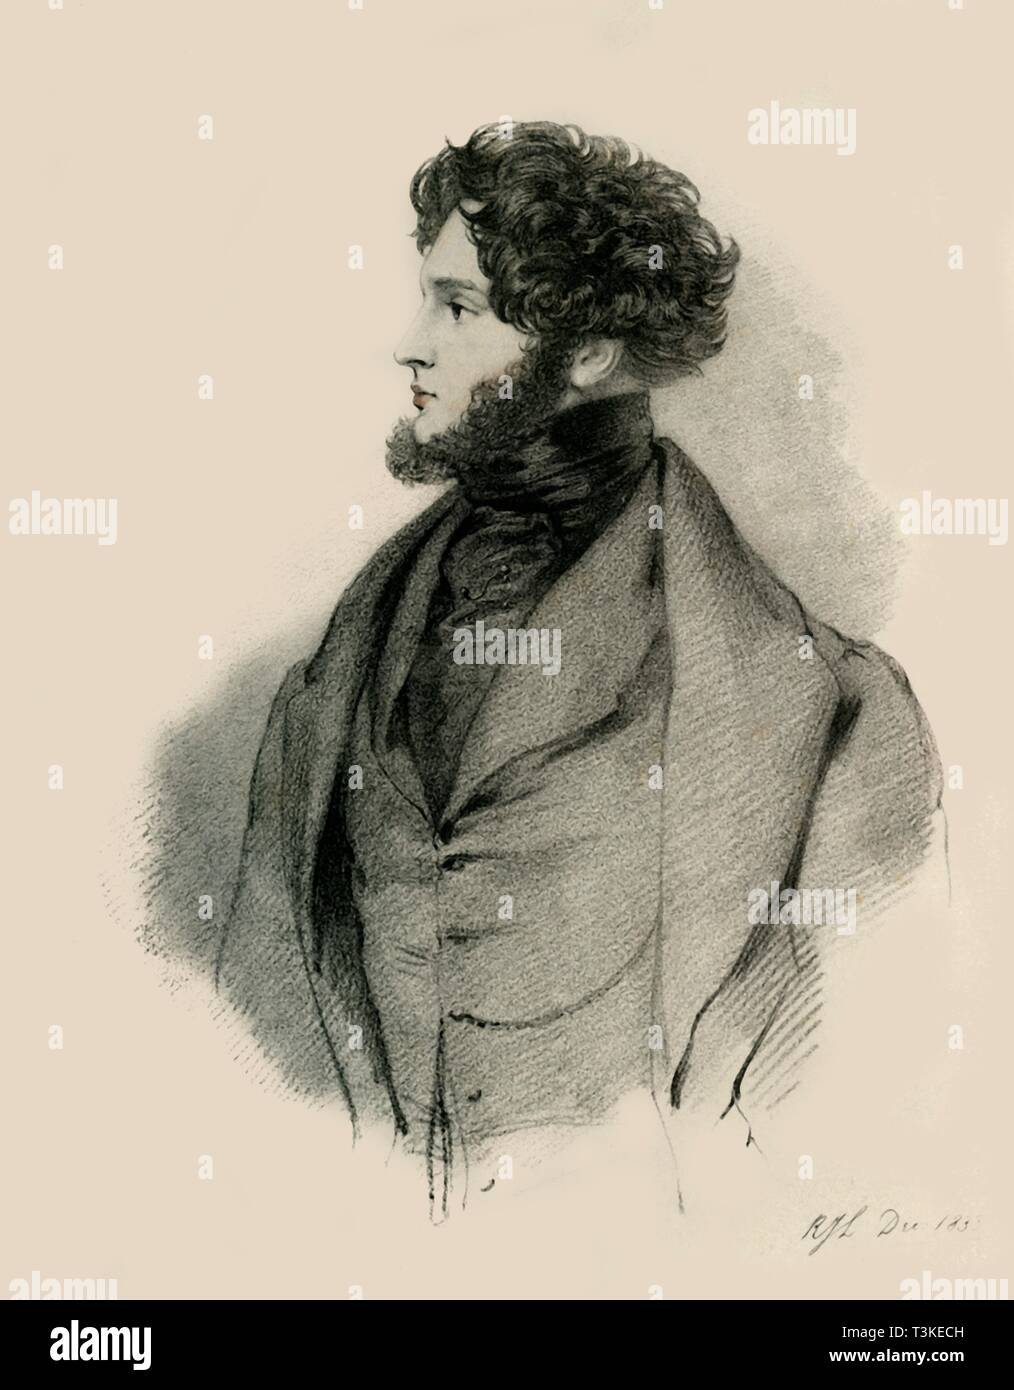 """Alfred, Count d'Orsay, 1833. Portrait of Alfred Guillaume Gabriel Grimod d'Orsay, comte d'Orsay (1801-1852), French amateur artist, dandy, and man of fashion. From """"Portraits by Count D'Orsay"""", an album assembled by Lady Georgiana Codrington. [1850s] - Stock Image"""